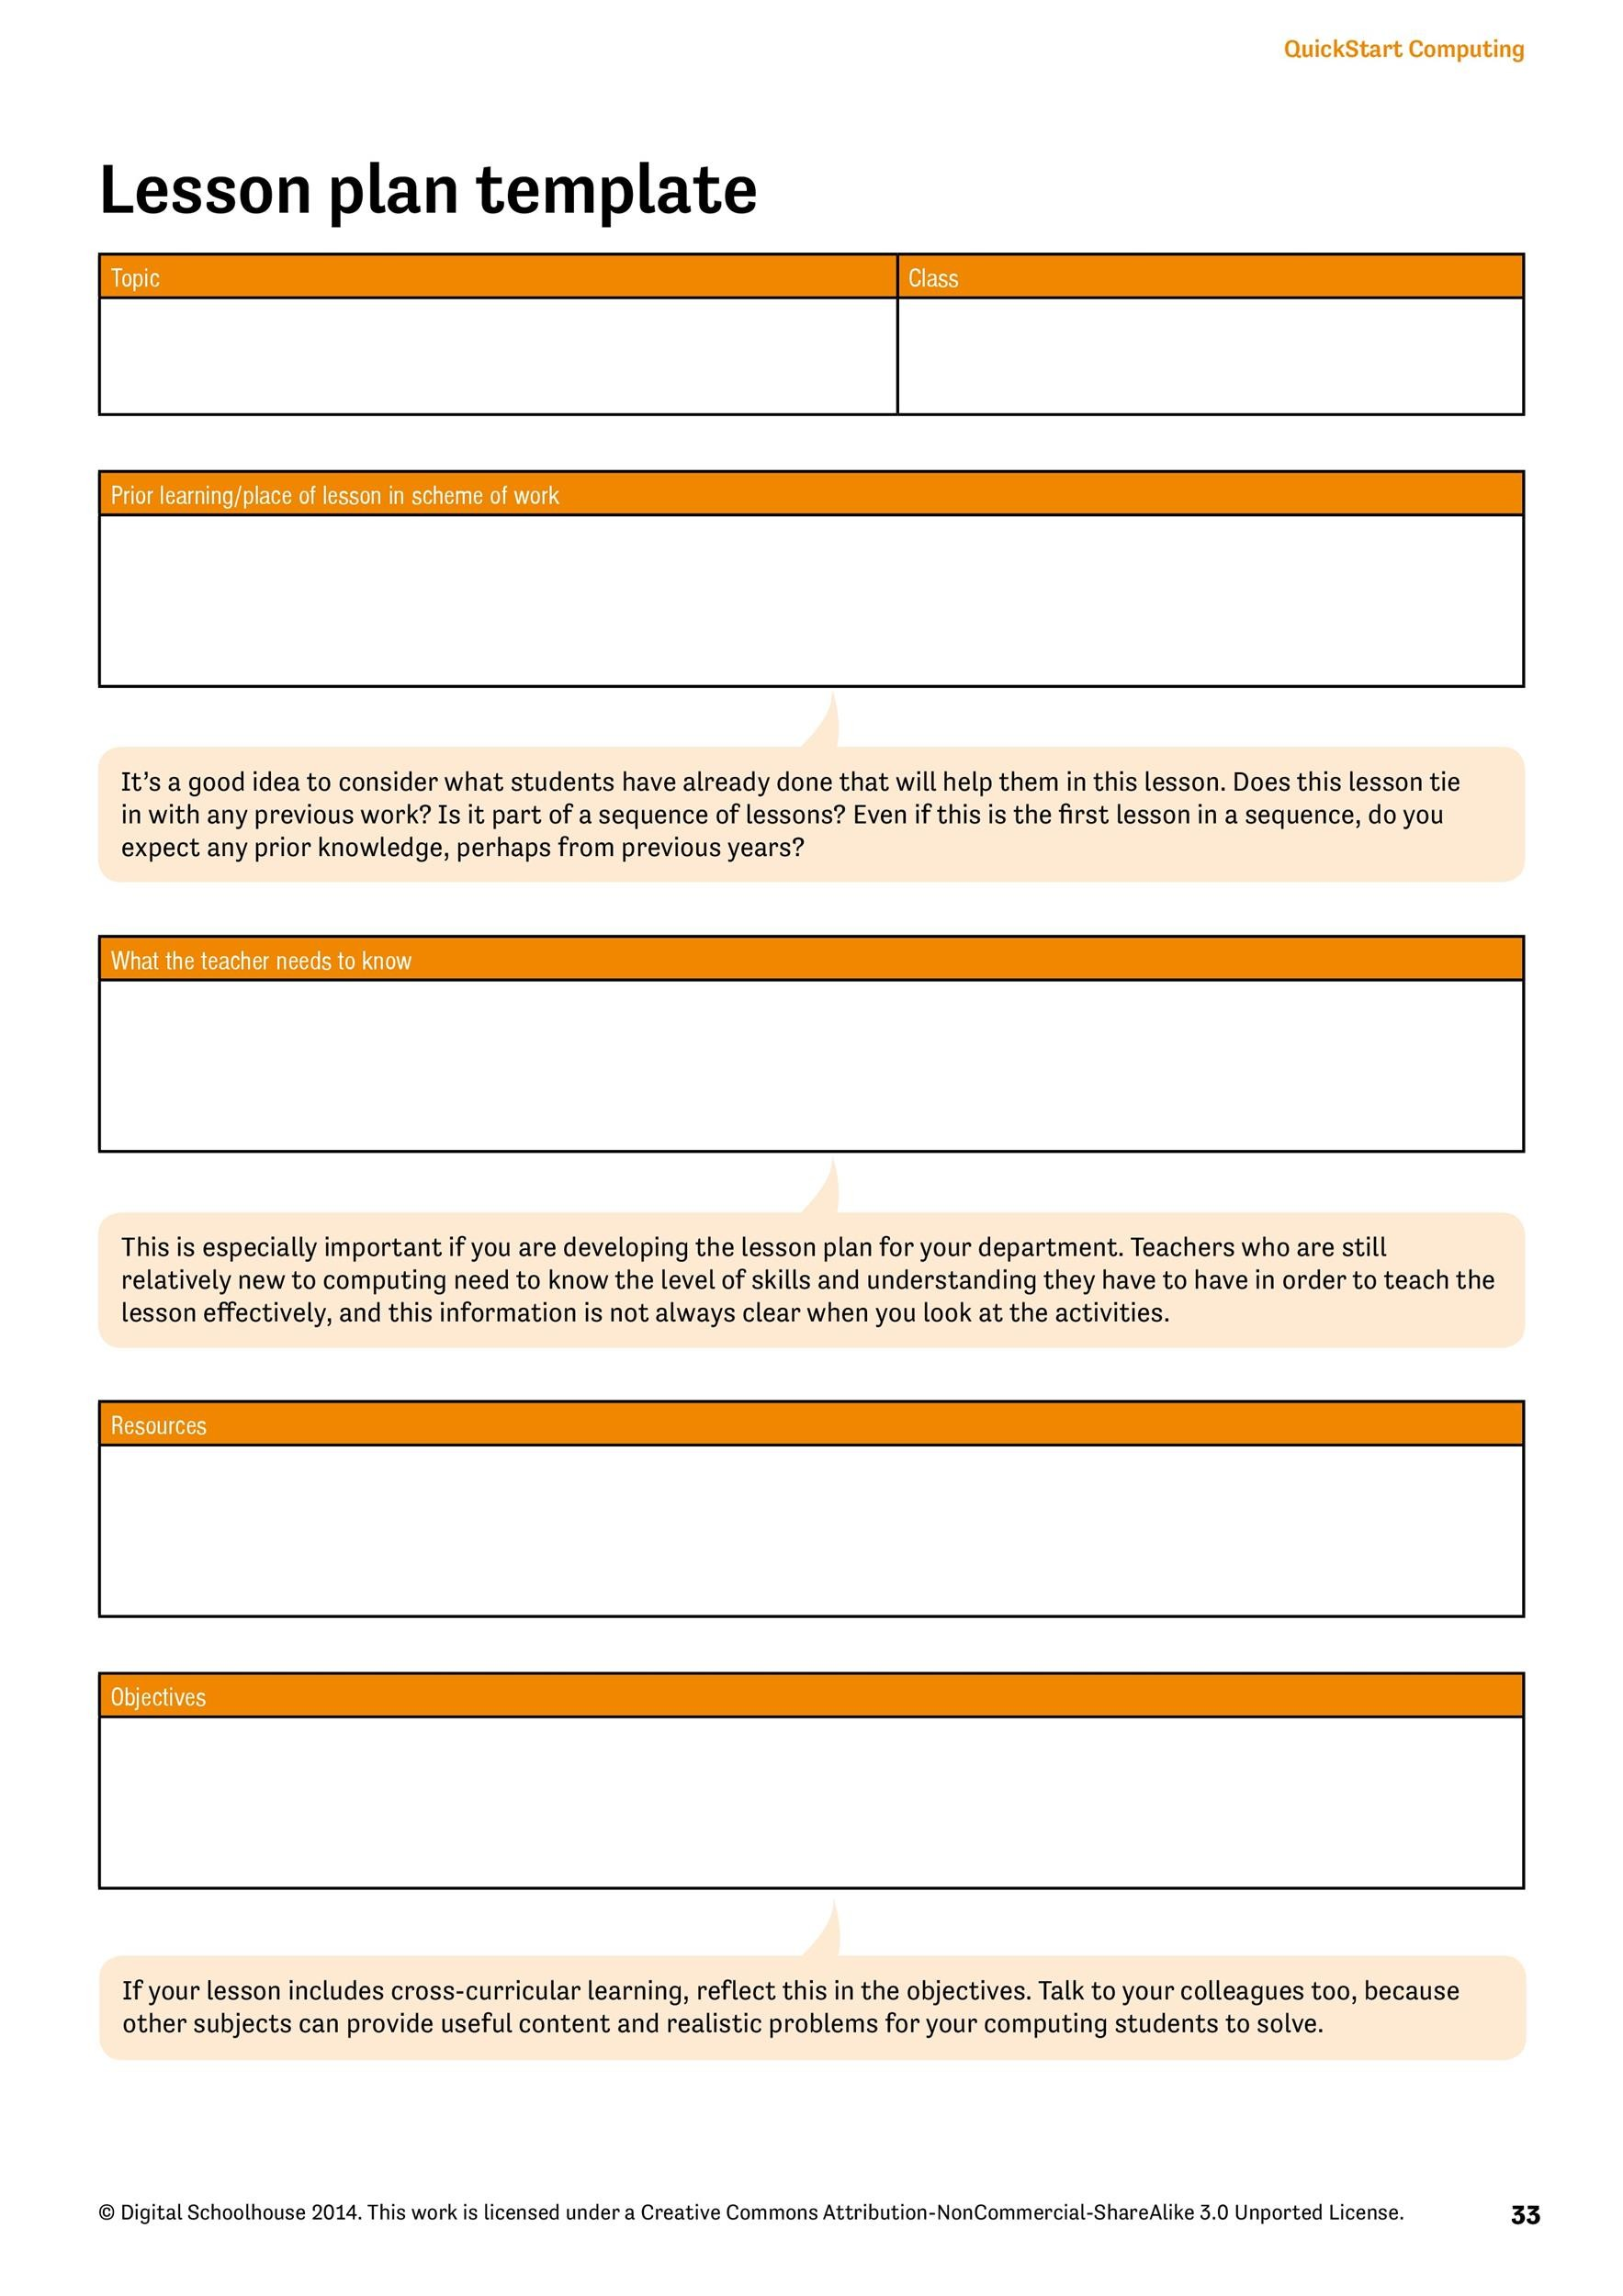 FREE Lesson Plan Templates Common Core Preschool Weekly - Lesson plan templates free